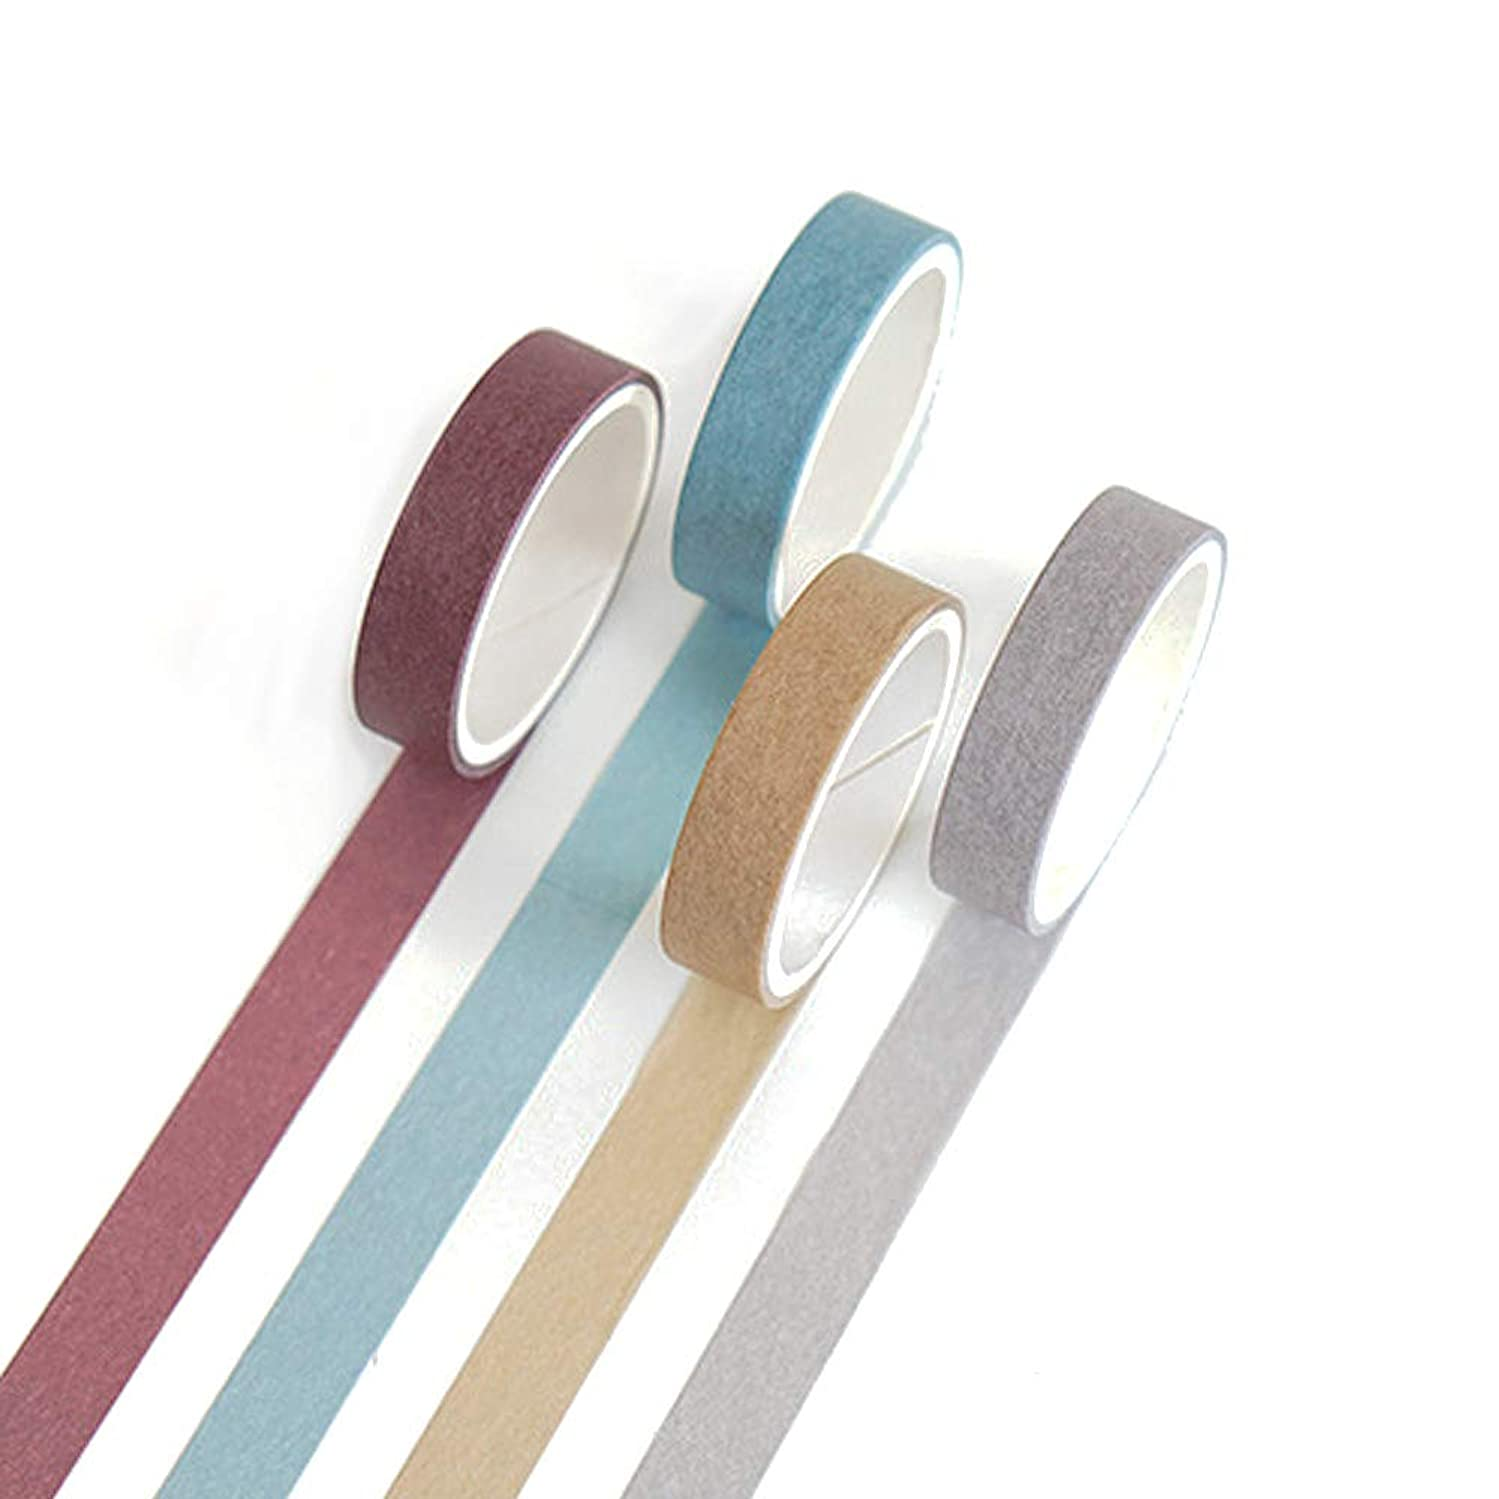 Yubbaex Set of 4 Natural Color Washi Masking Tape, Sticky Paper Tape for DIY, Decorative Craft, Gift Wrapping, Scrapbook, (7-Basic Style)